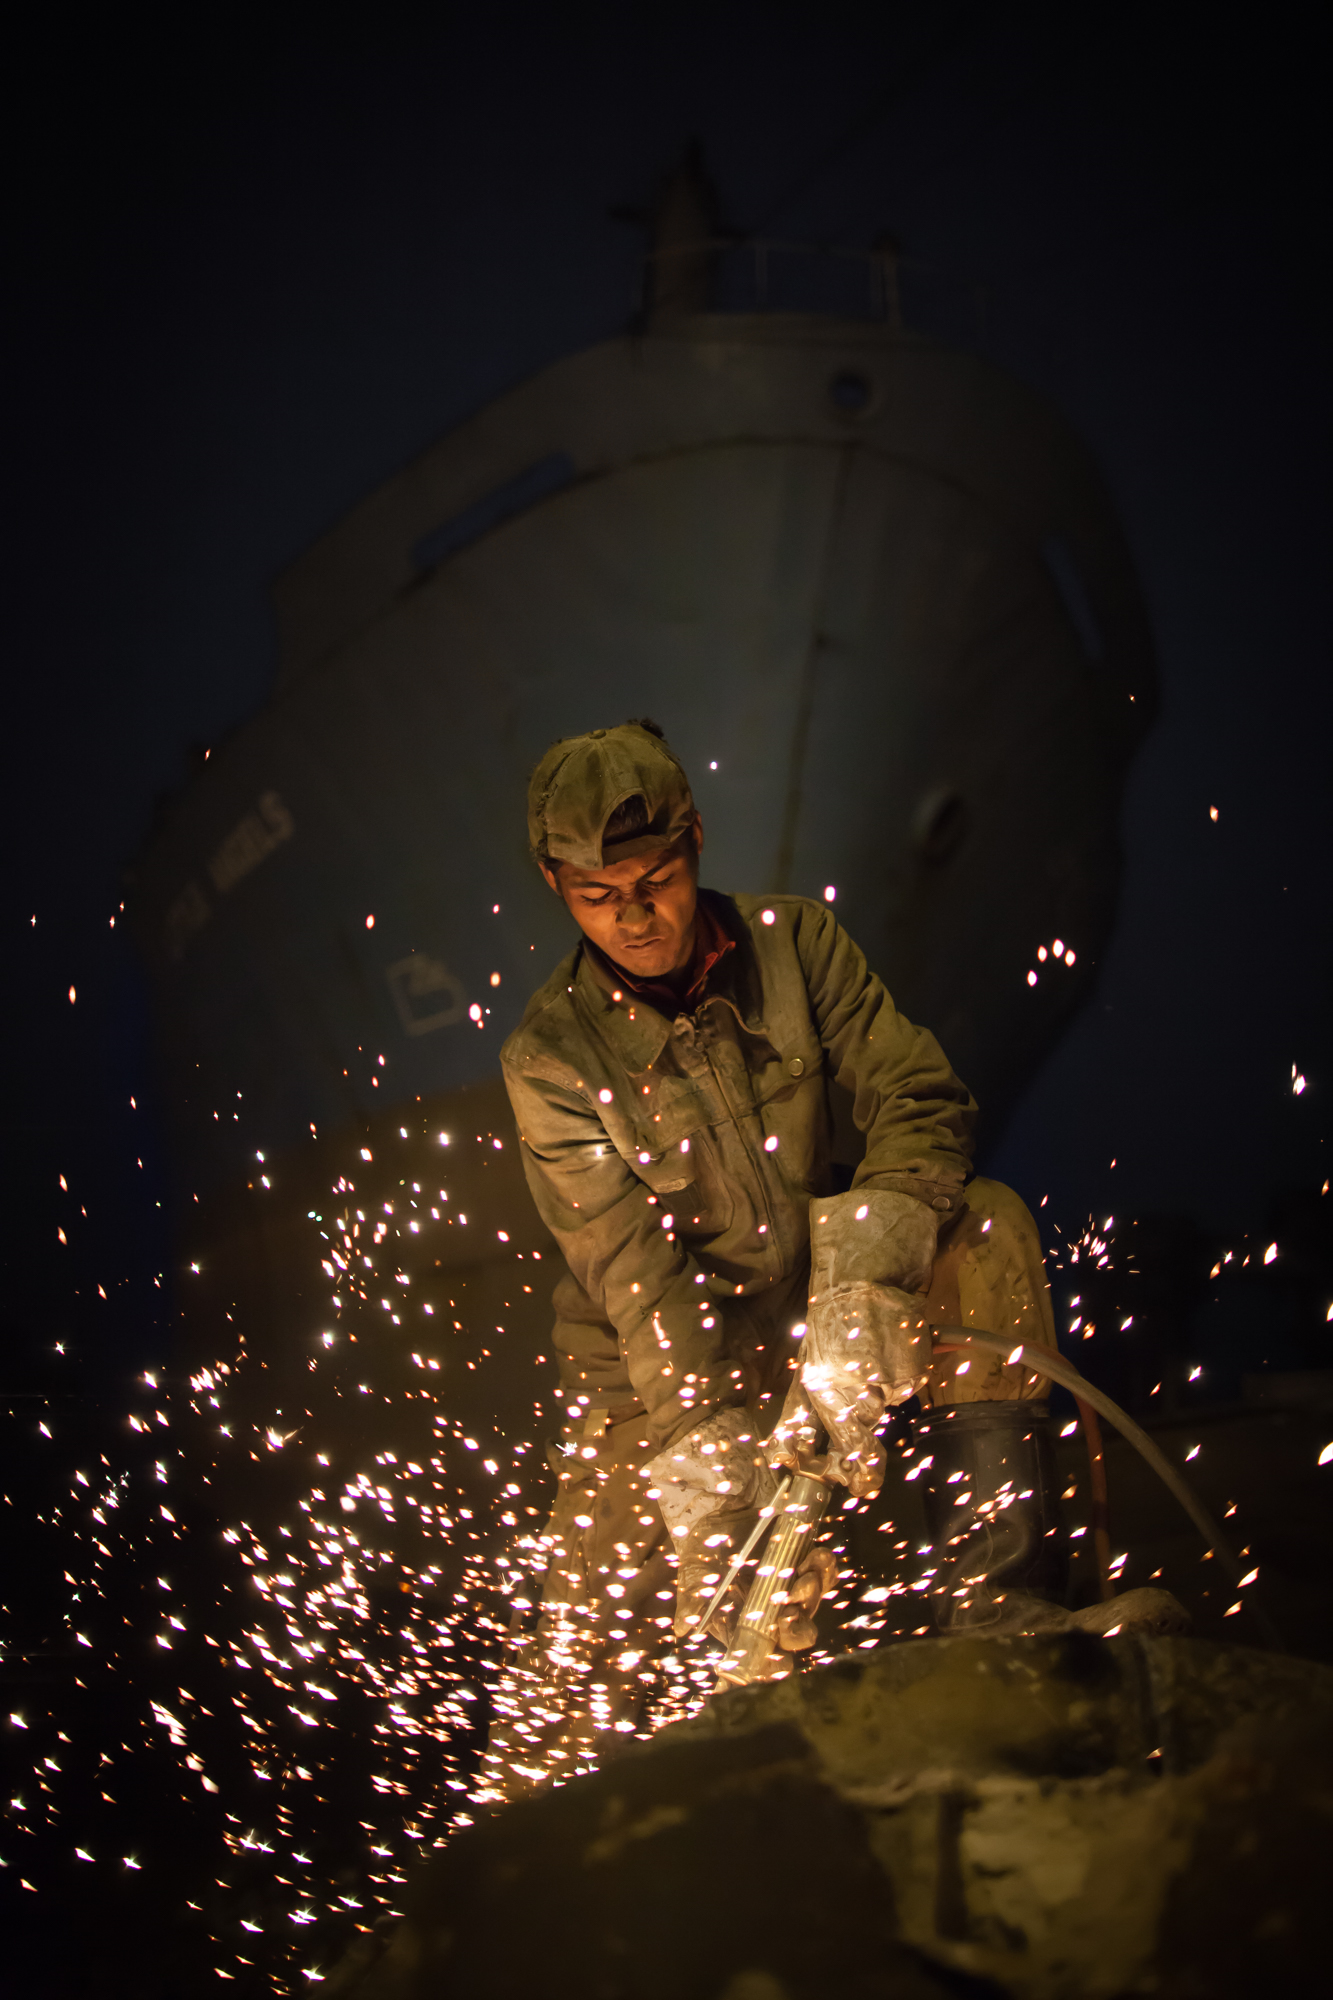 A worker using a blowtorch at night. Copyright Pierre Torset. See more of Pierre's shipbreaking photos    here   .